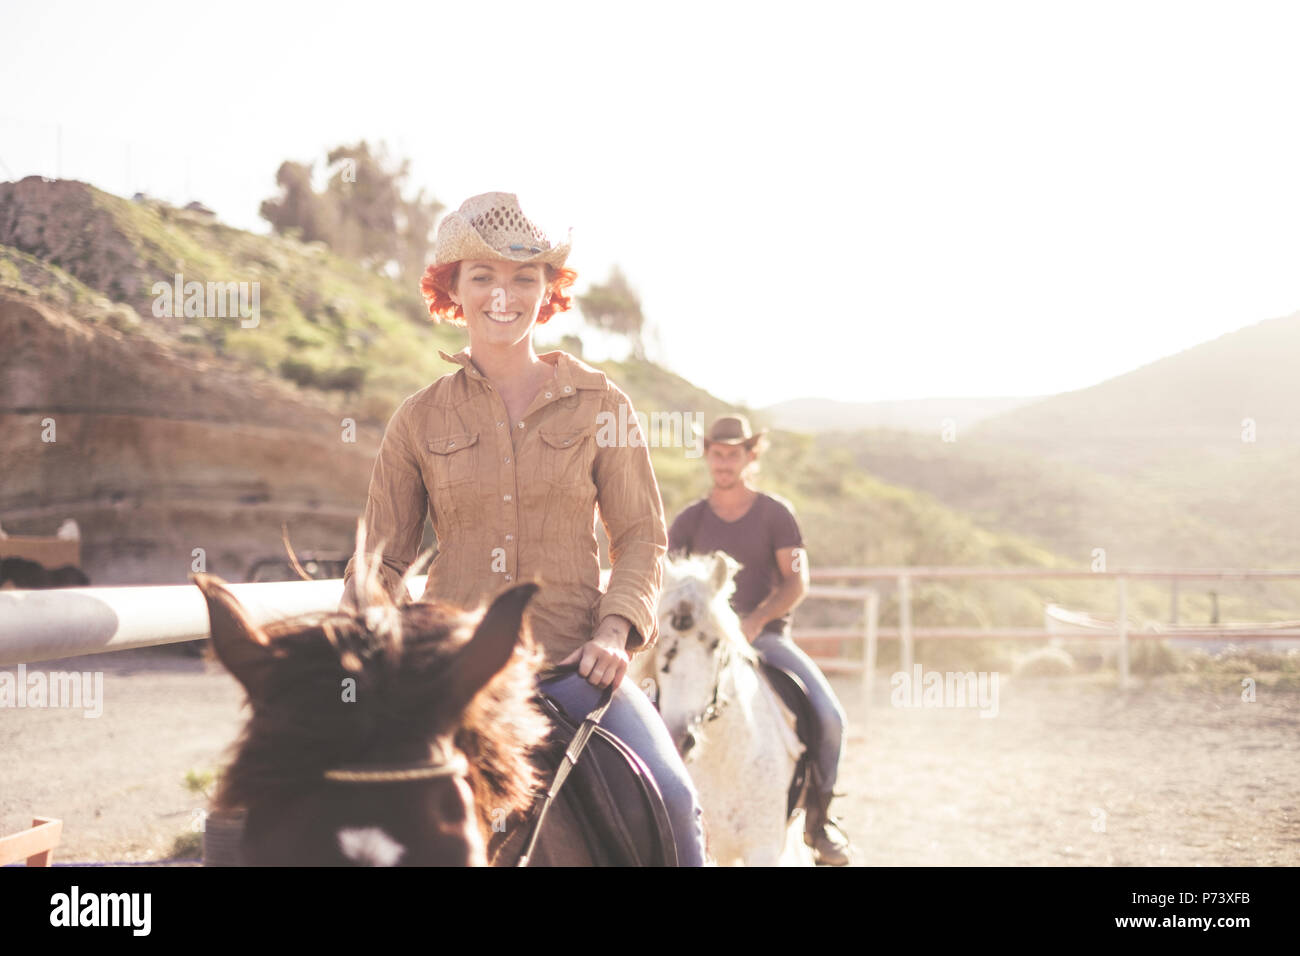 nice caucasian couple friends young people ride beautiful horses outdoor in a school. sun backlight for bright image in warm filter. friendly scene wi - Stock Image